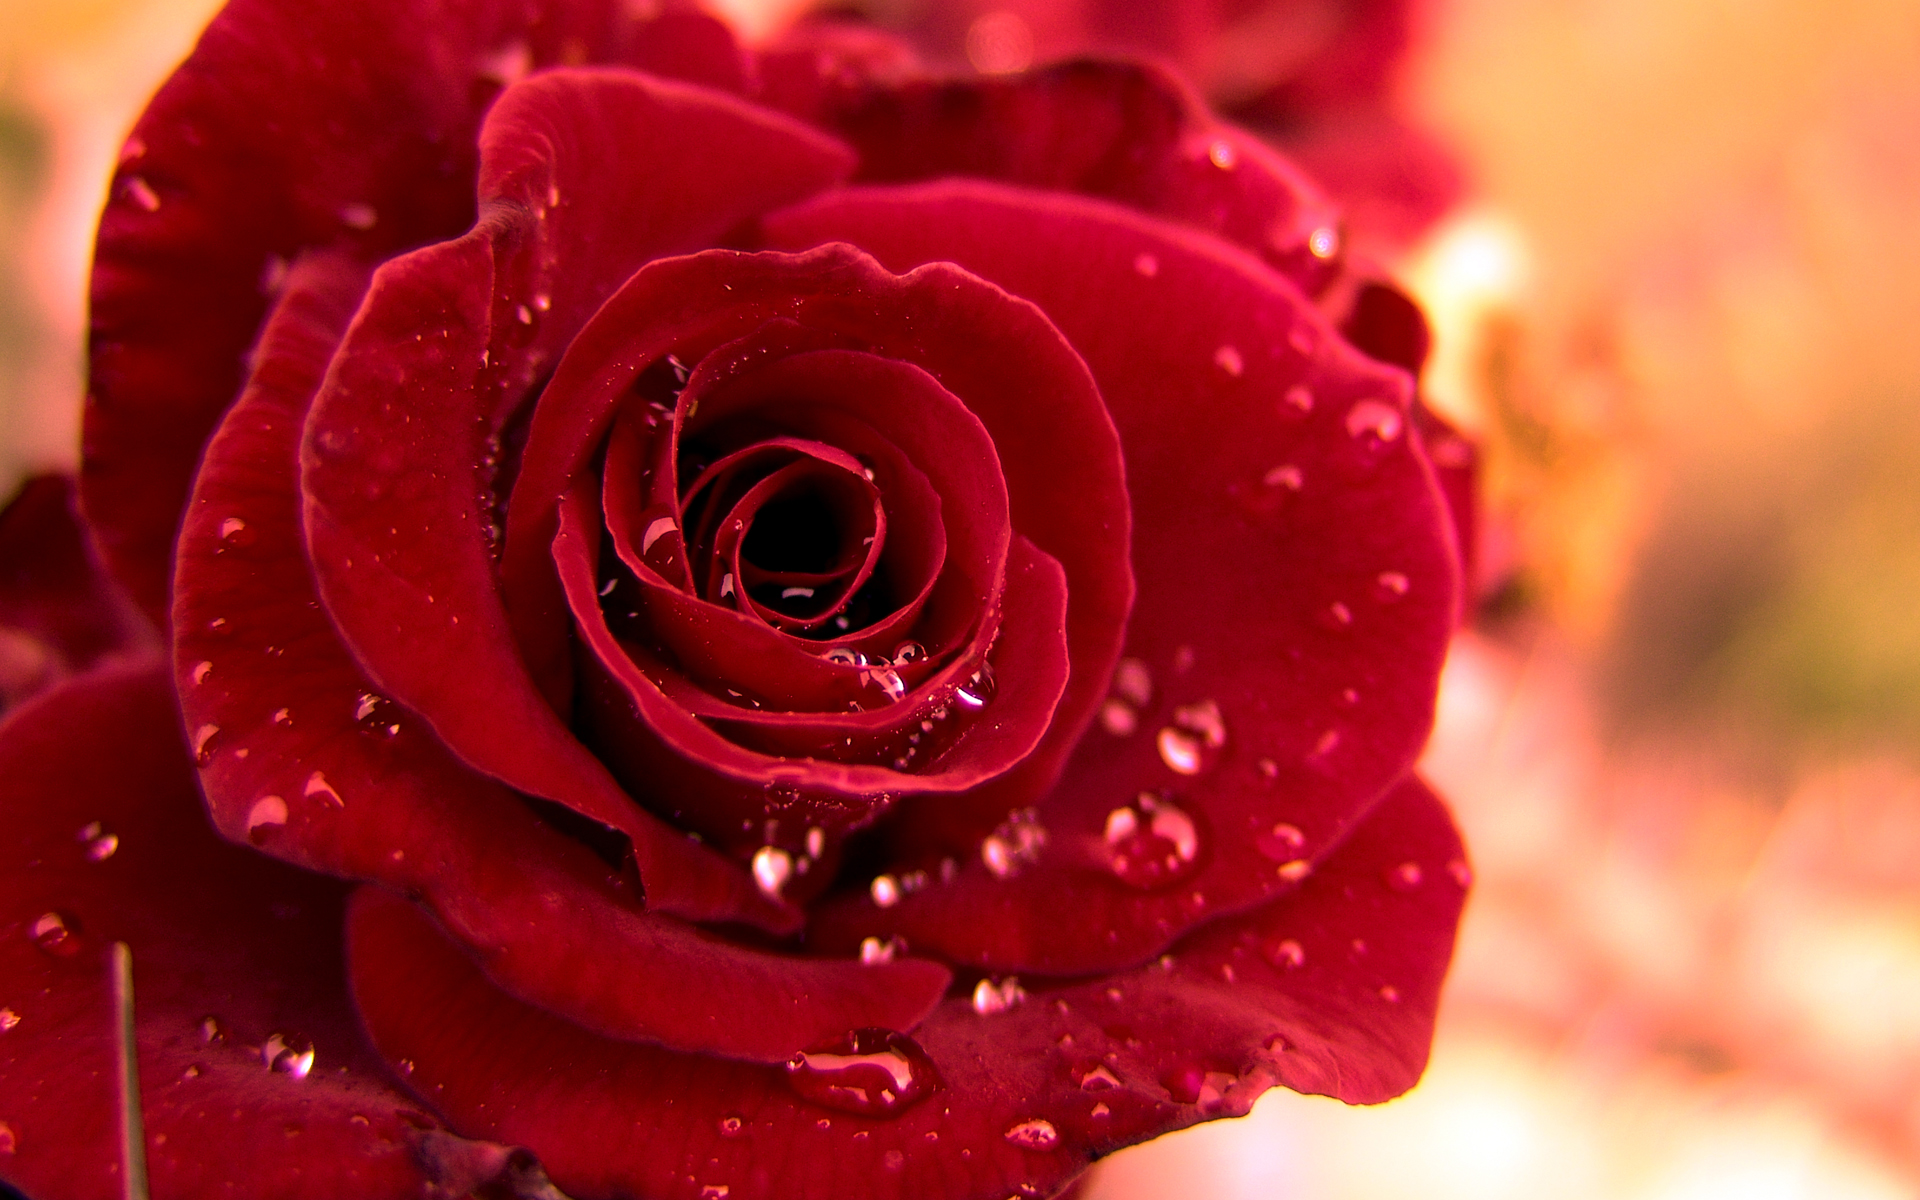 Red Roses Wallpapers HD A39 love dew drops